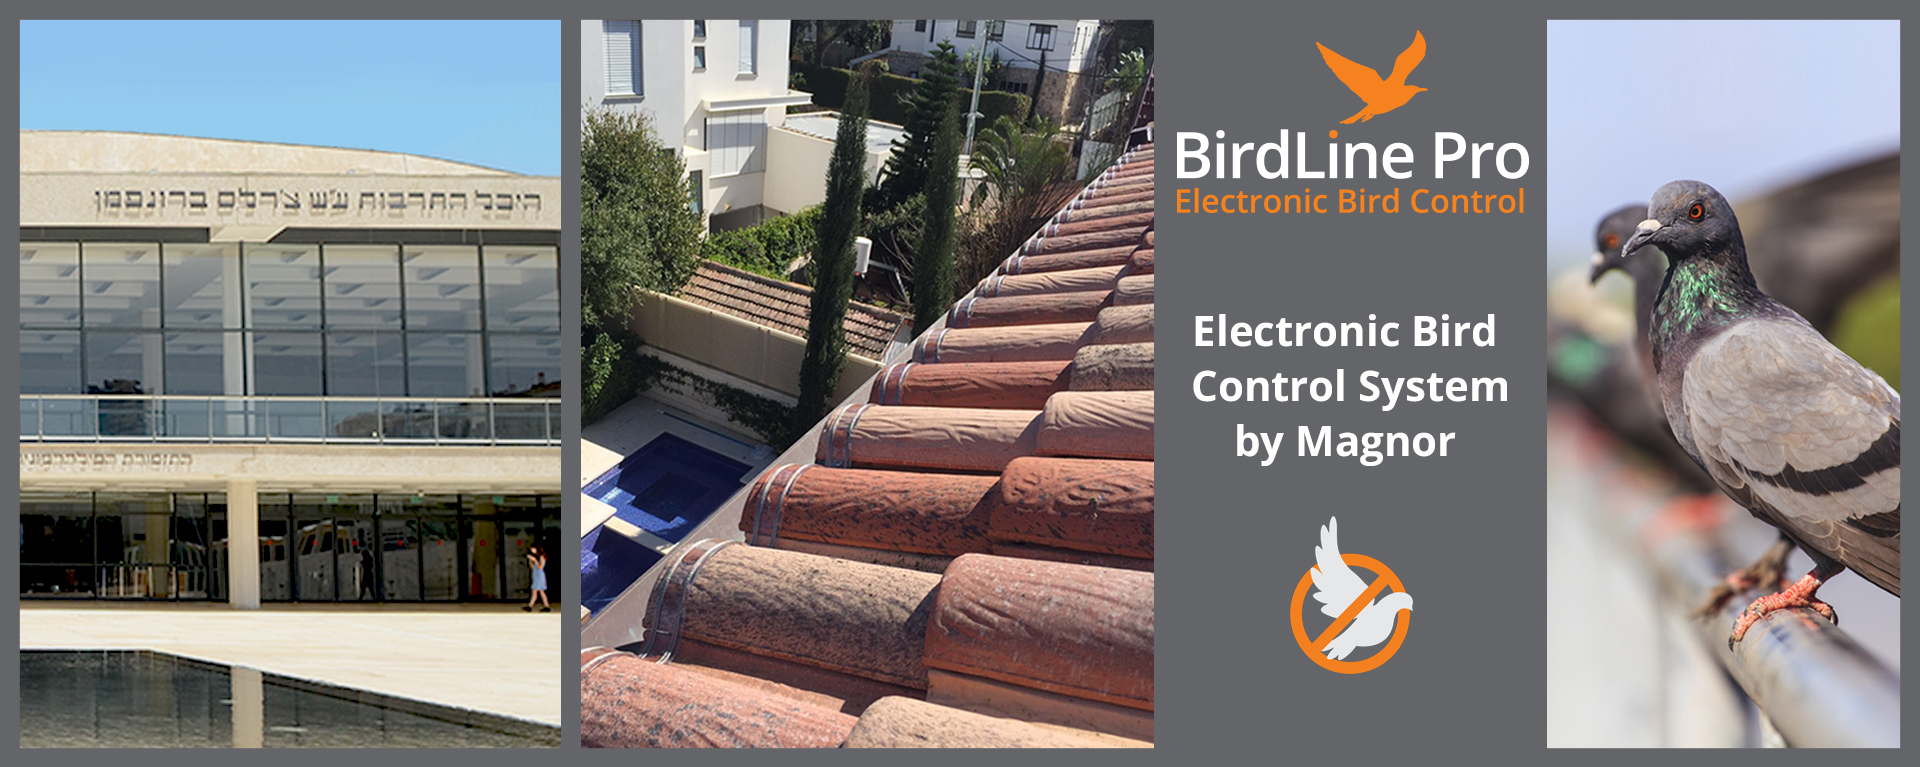 Magnor_BIRD_ CONTROL_web page_FINAL_ENG